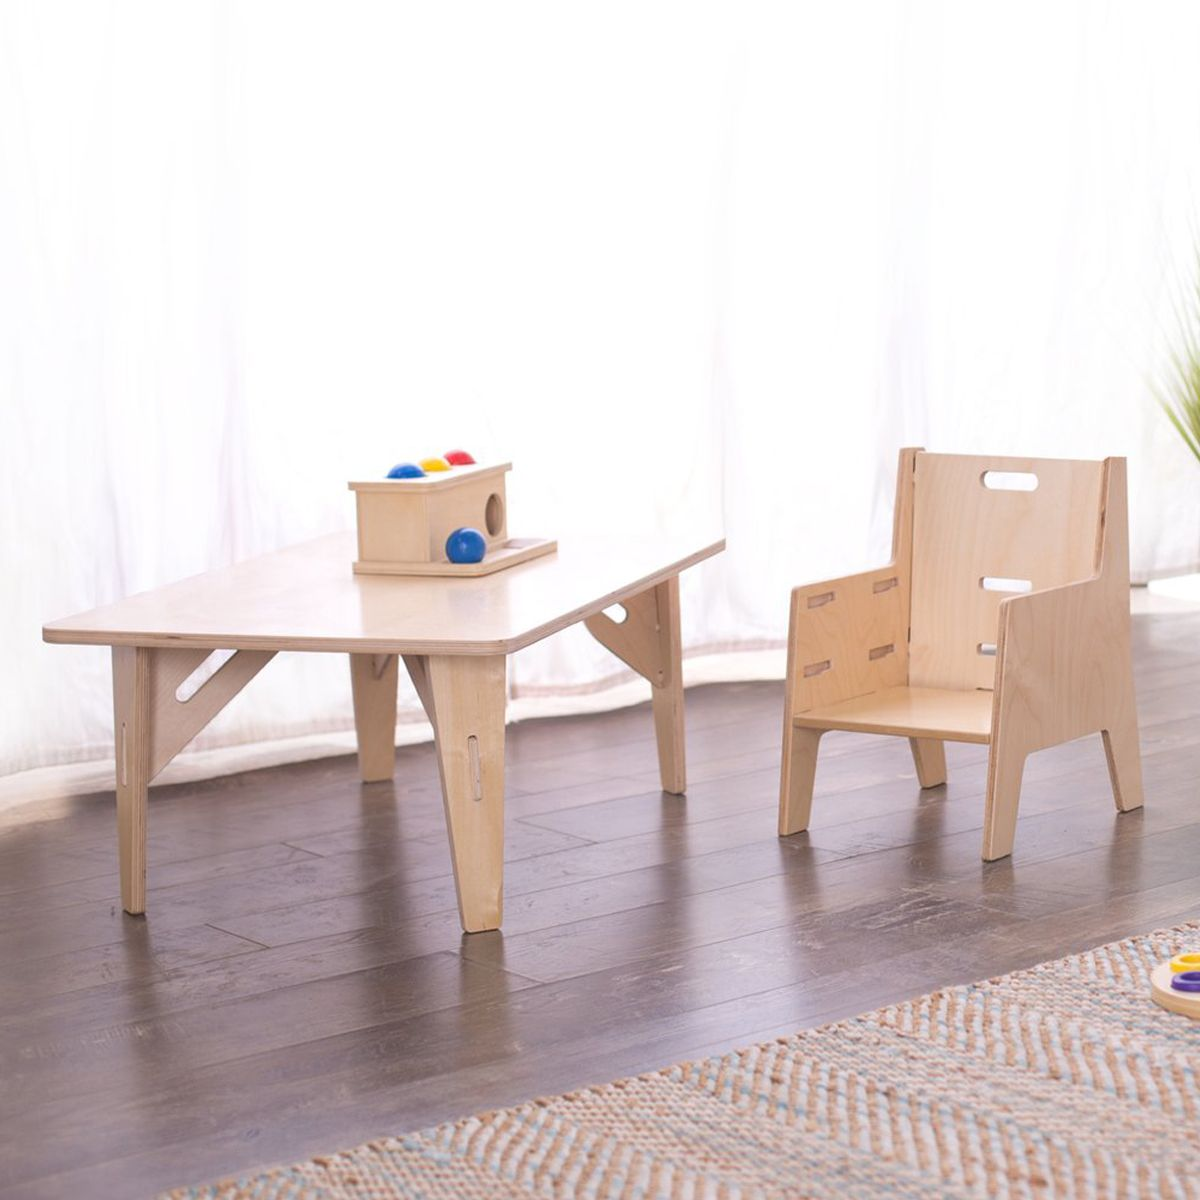 Montessori Weaning Chair & Table Set